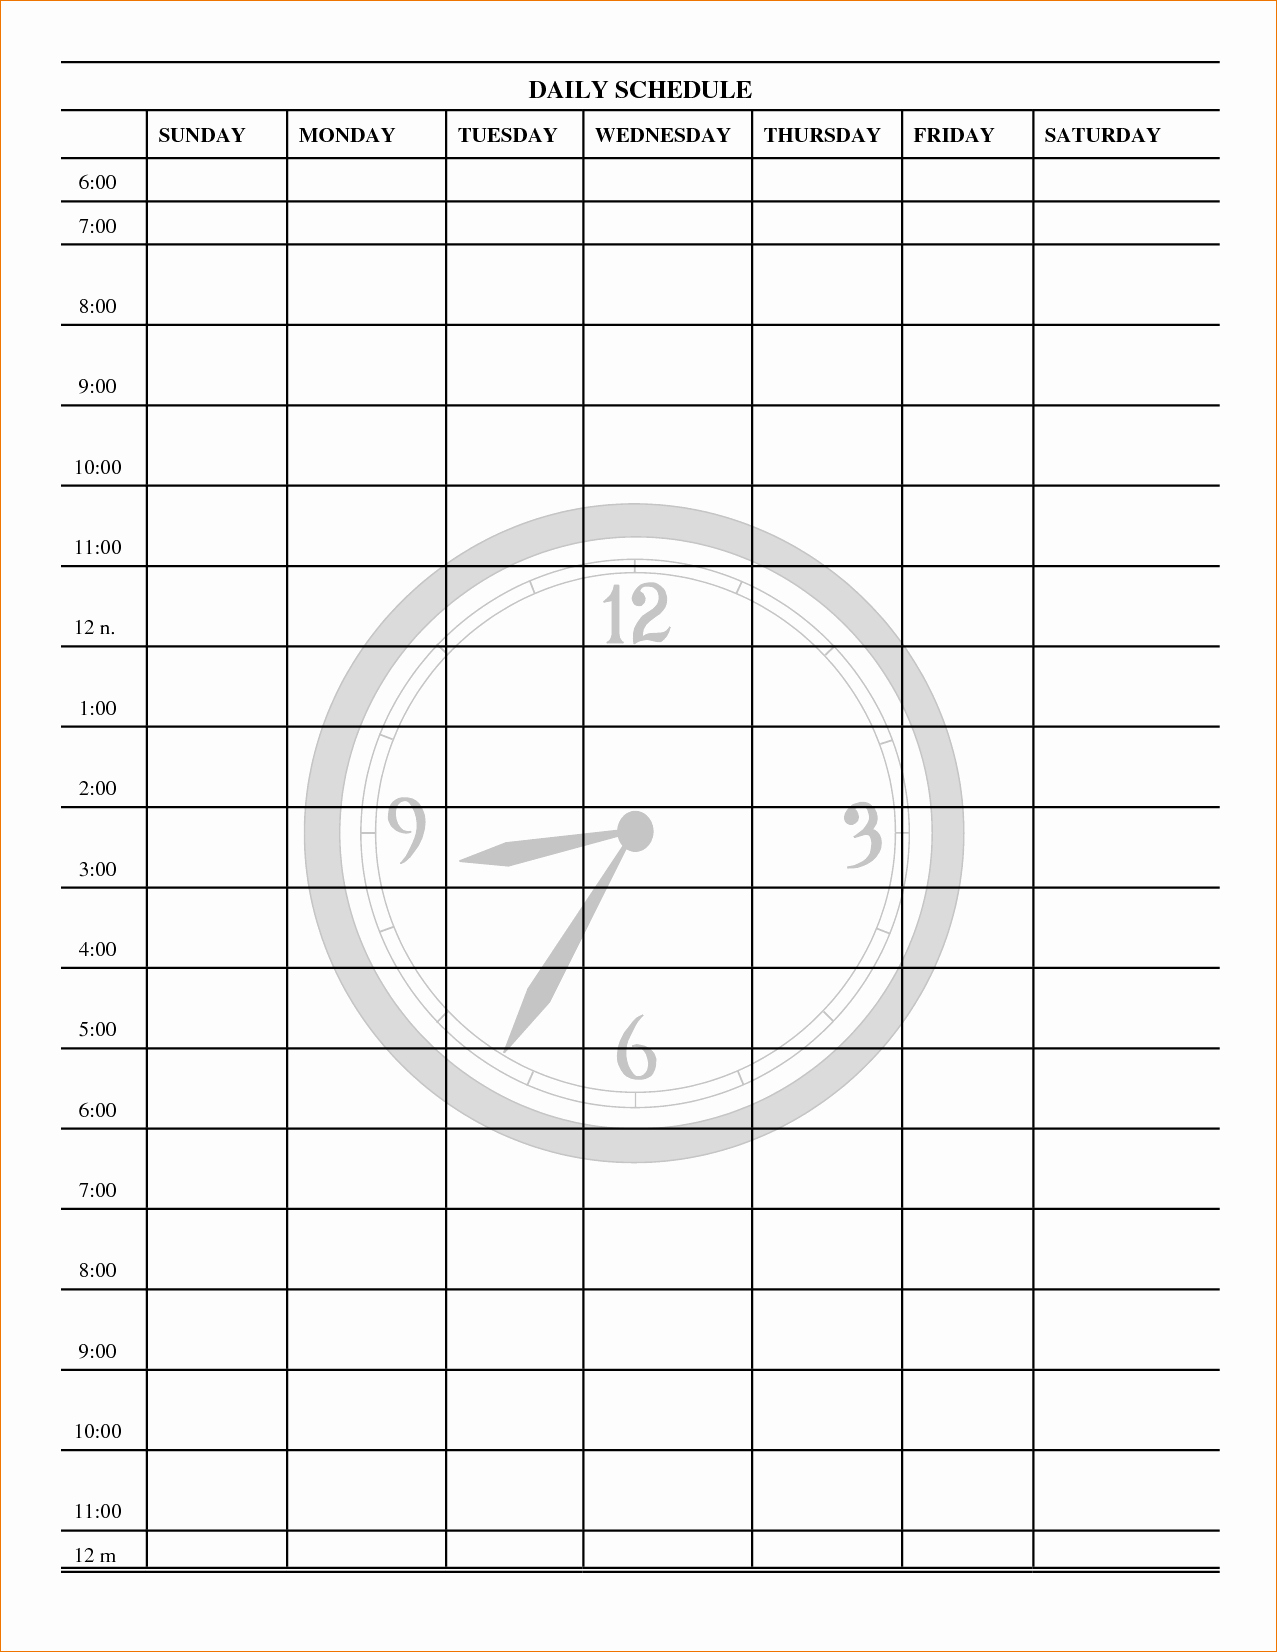 Printable Daily Schedule Template Inspirational 3 Daily Schedule Printable